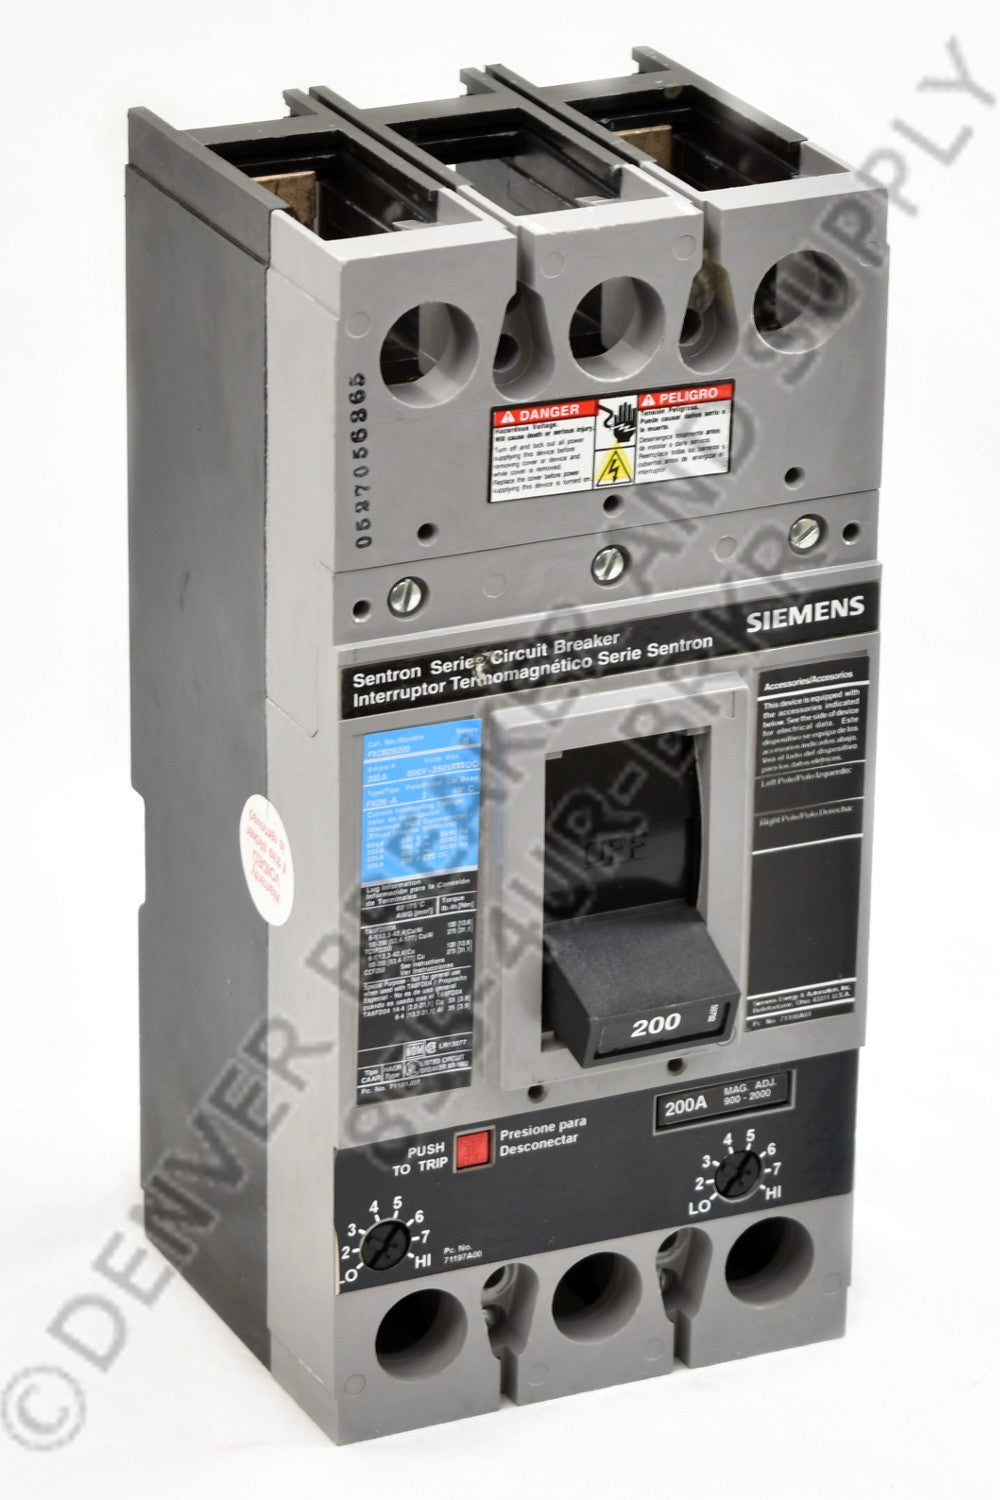 Siemens FD62B250 Circuit Breakers